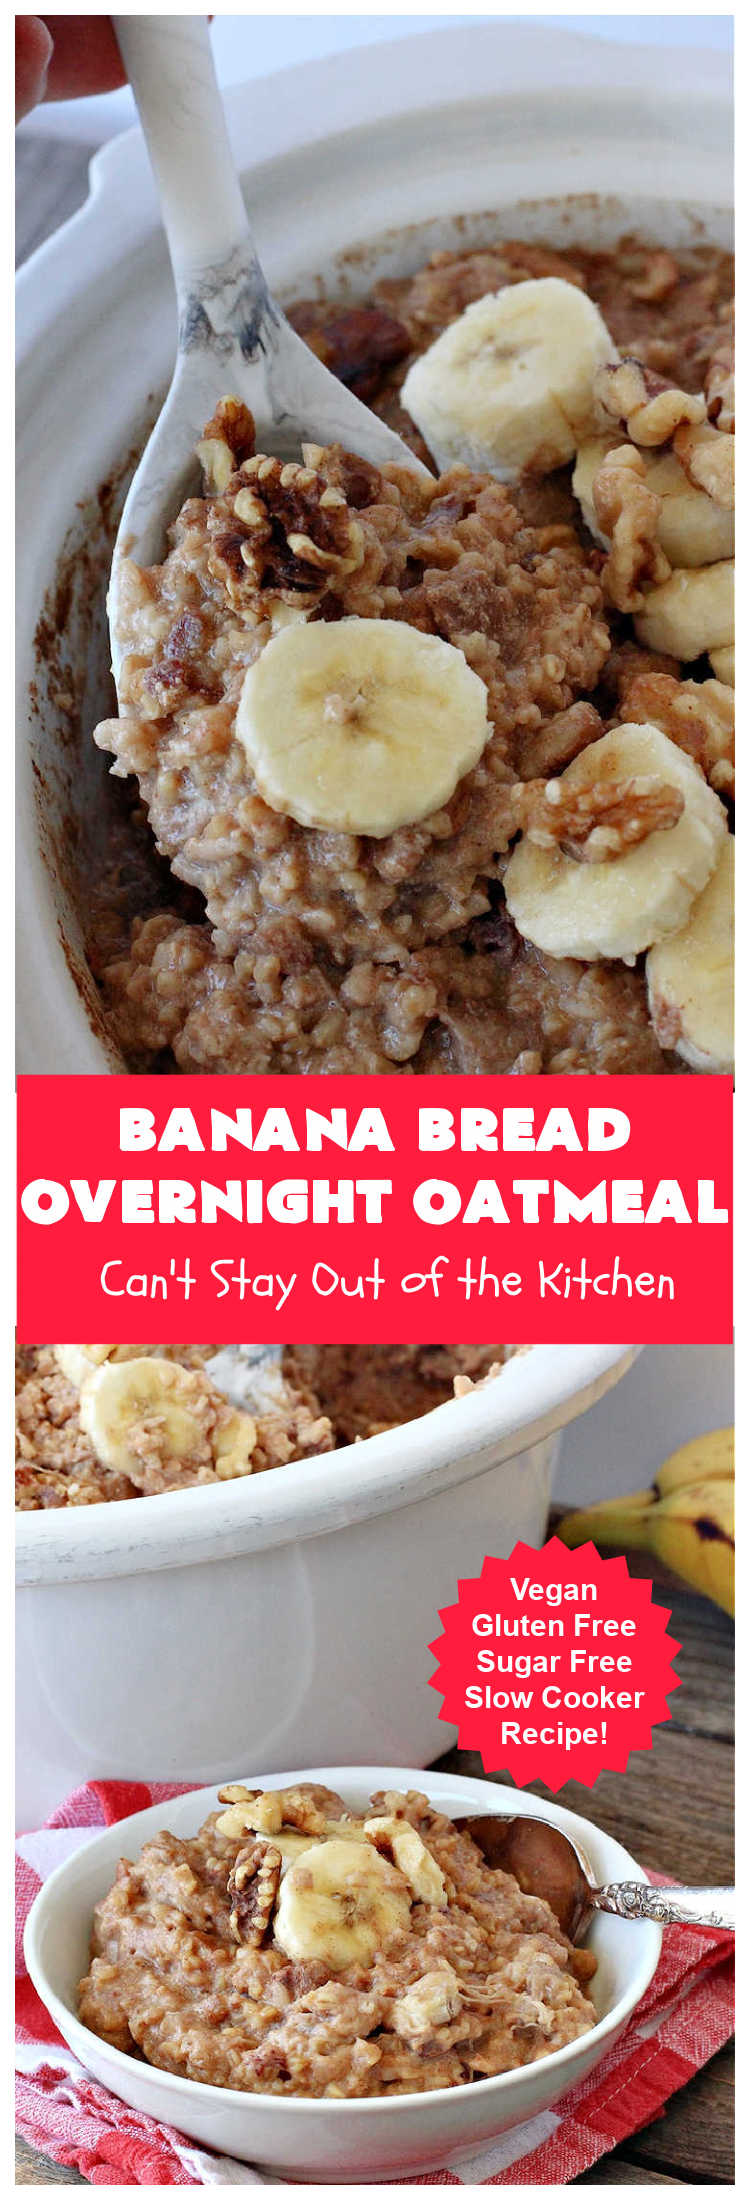 Banana Bread Overnight Oatmeal   Can't Stay Out of the Kitchen   get a dose of #BananaBread in every bite of this amazing #oatmeal. Steel-cut oats slow cook in the #crockpot overnight making them creamy & delicious. This #recipe includes #bananas, #dates #walnuts & #cinnamon. #Vegan #GlutenFree #SugarFree #SlowCooker #healthy #breakfast #HolidayBreakfast #OvernightOatmeal #HealthyBreakfast #BananaBreadOvernightOatmeal